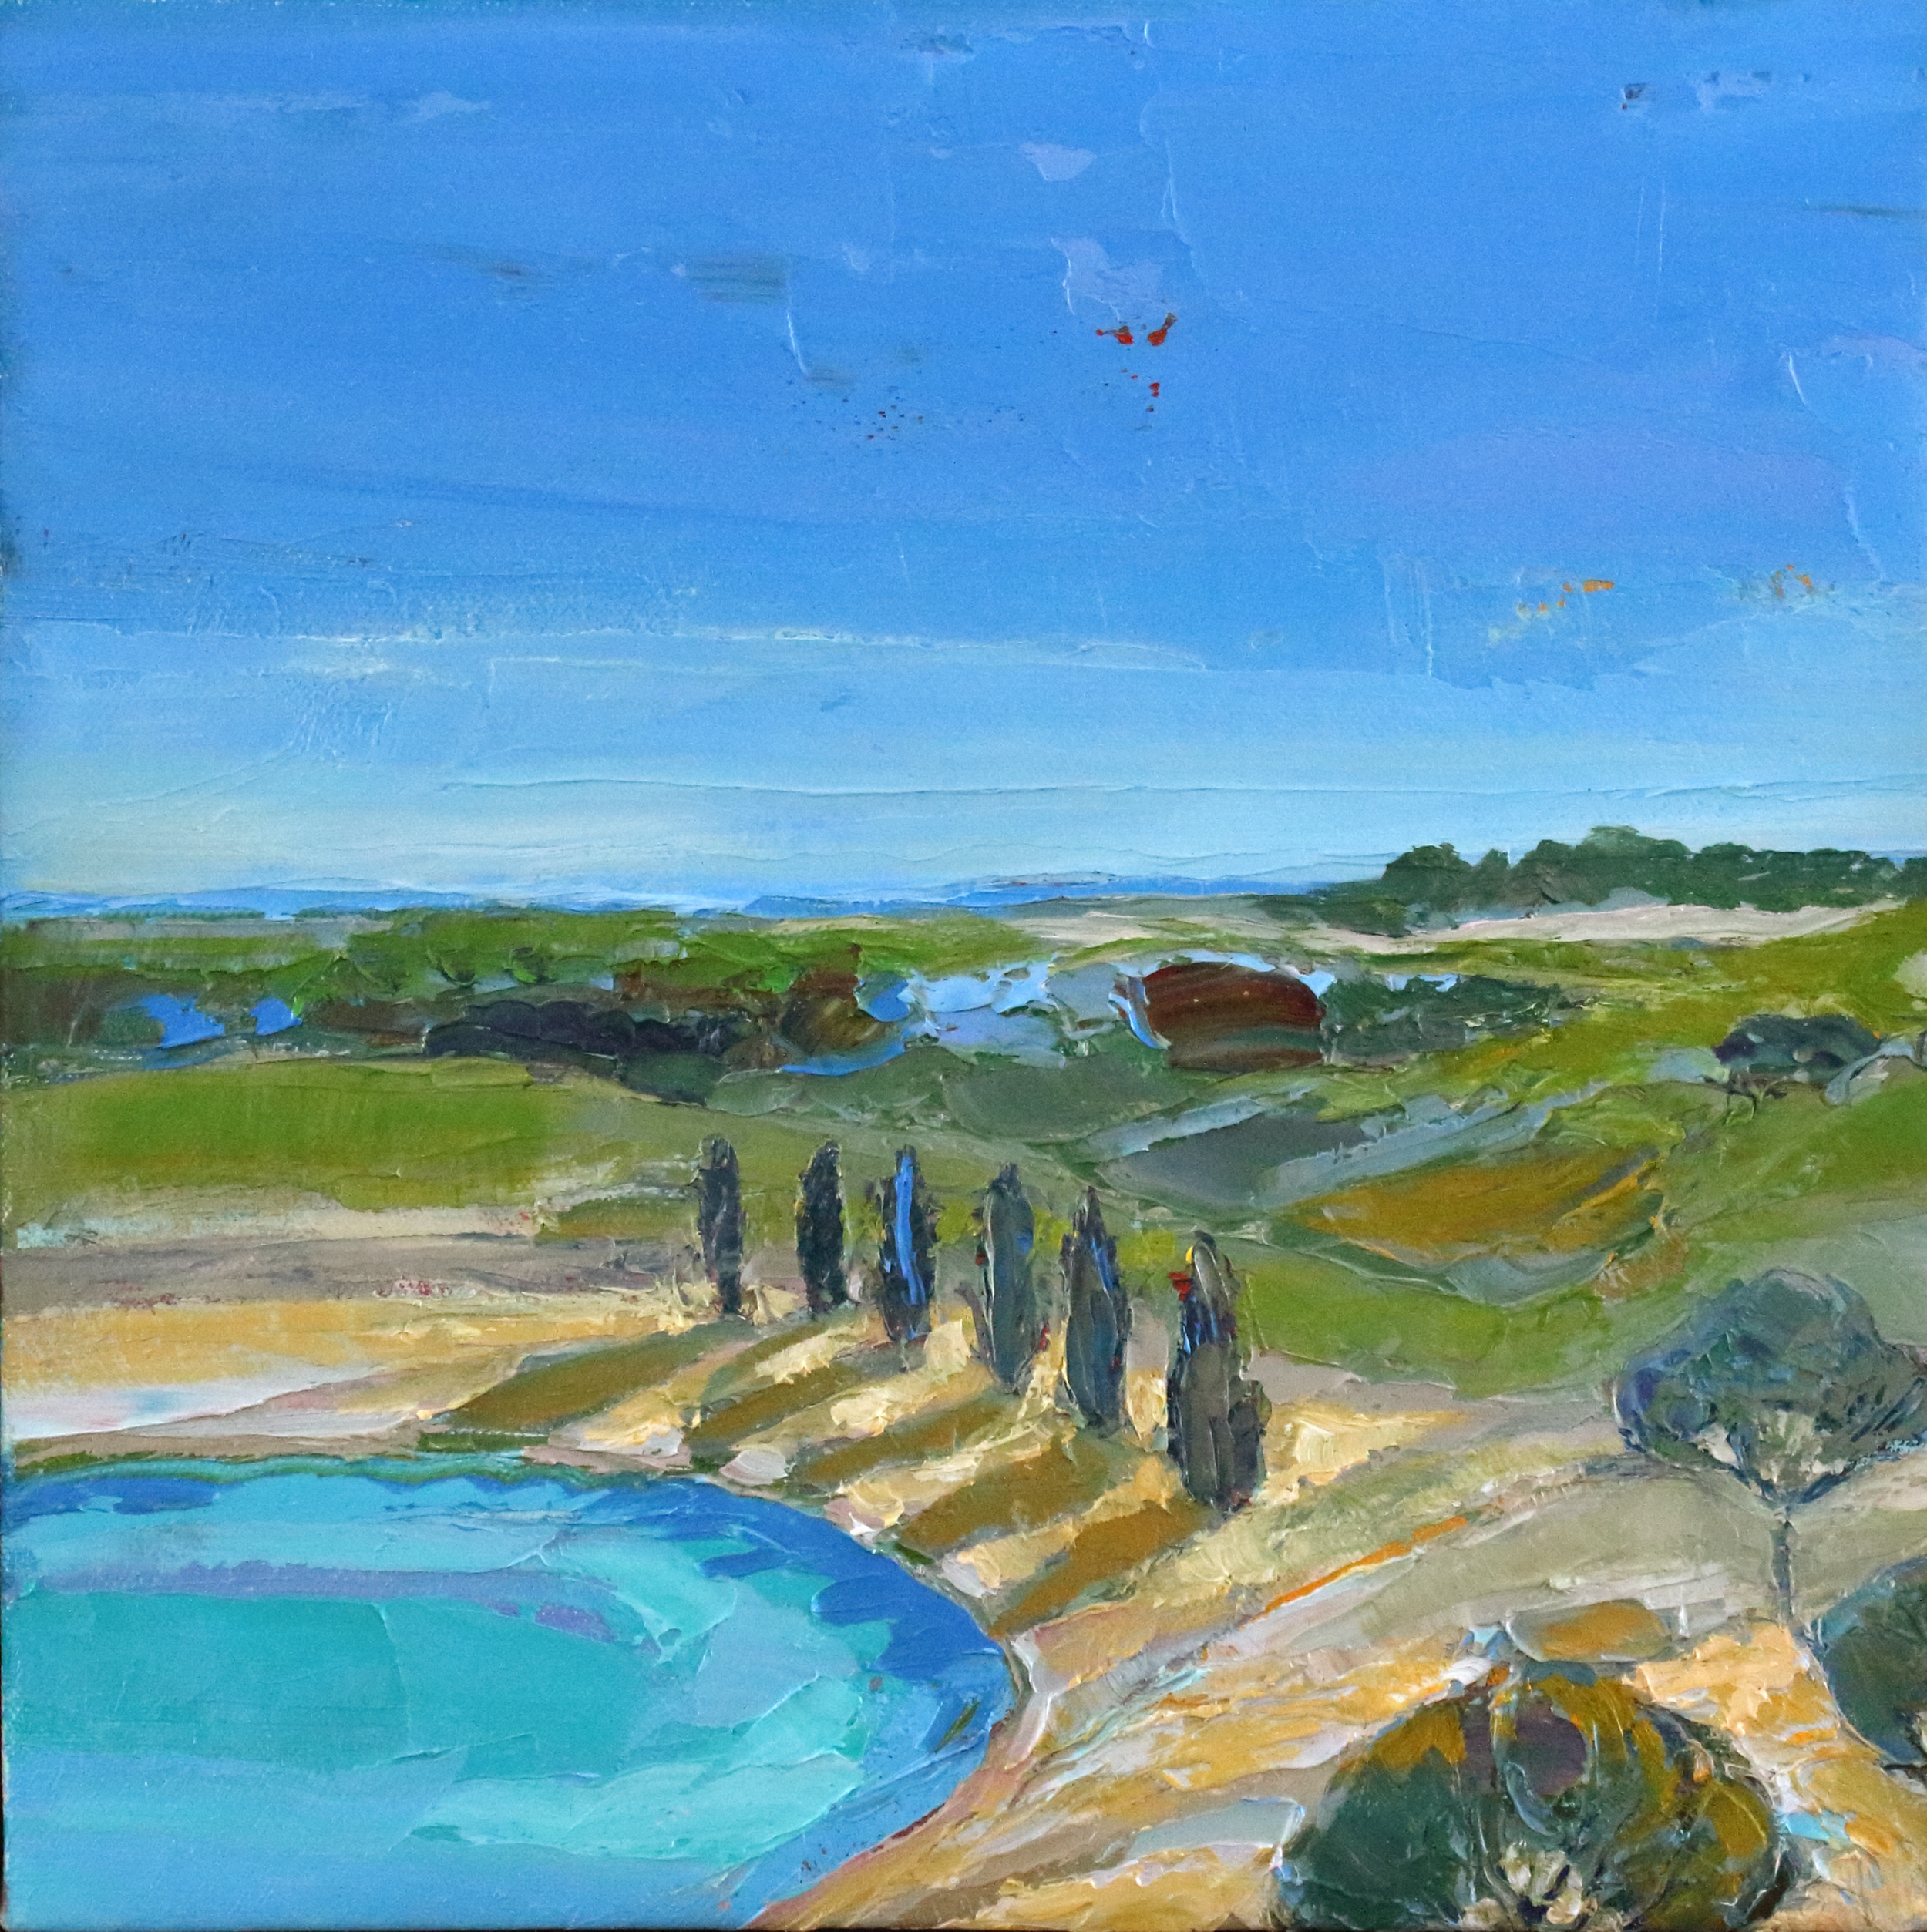 Title: Edge of the Bay Size: 12 x 12 inches Medium: Oil on Canvas Price: £1700